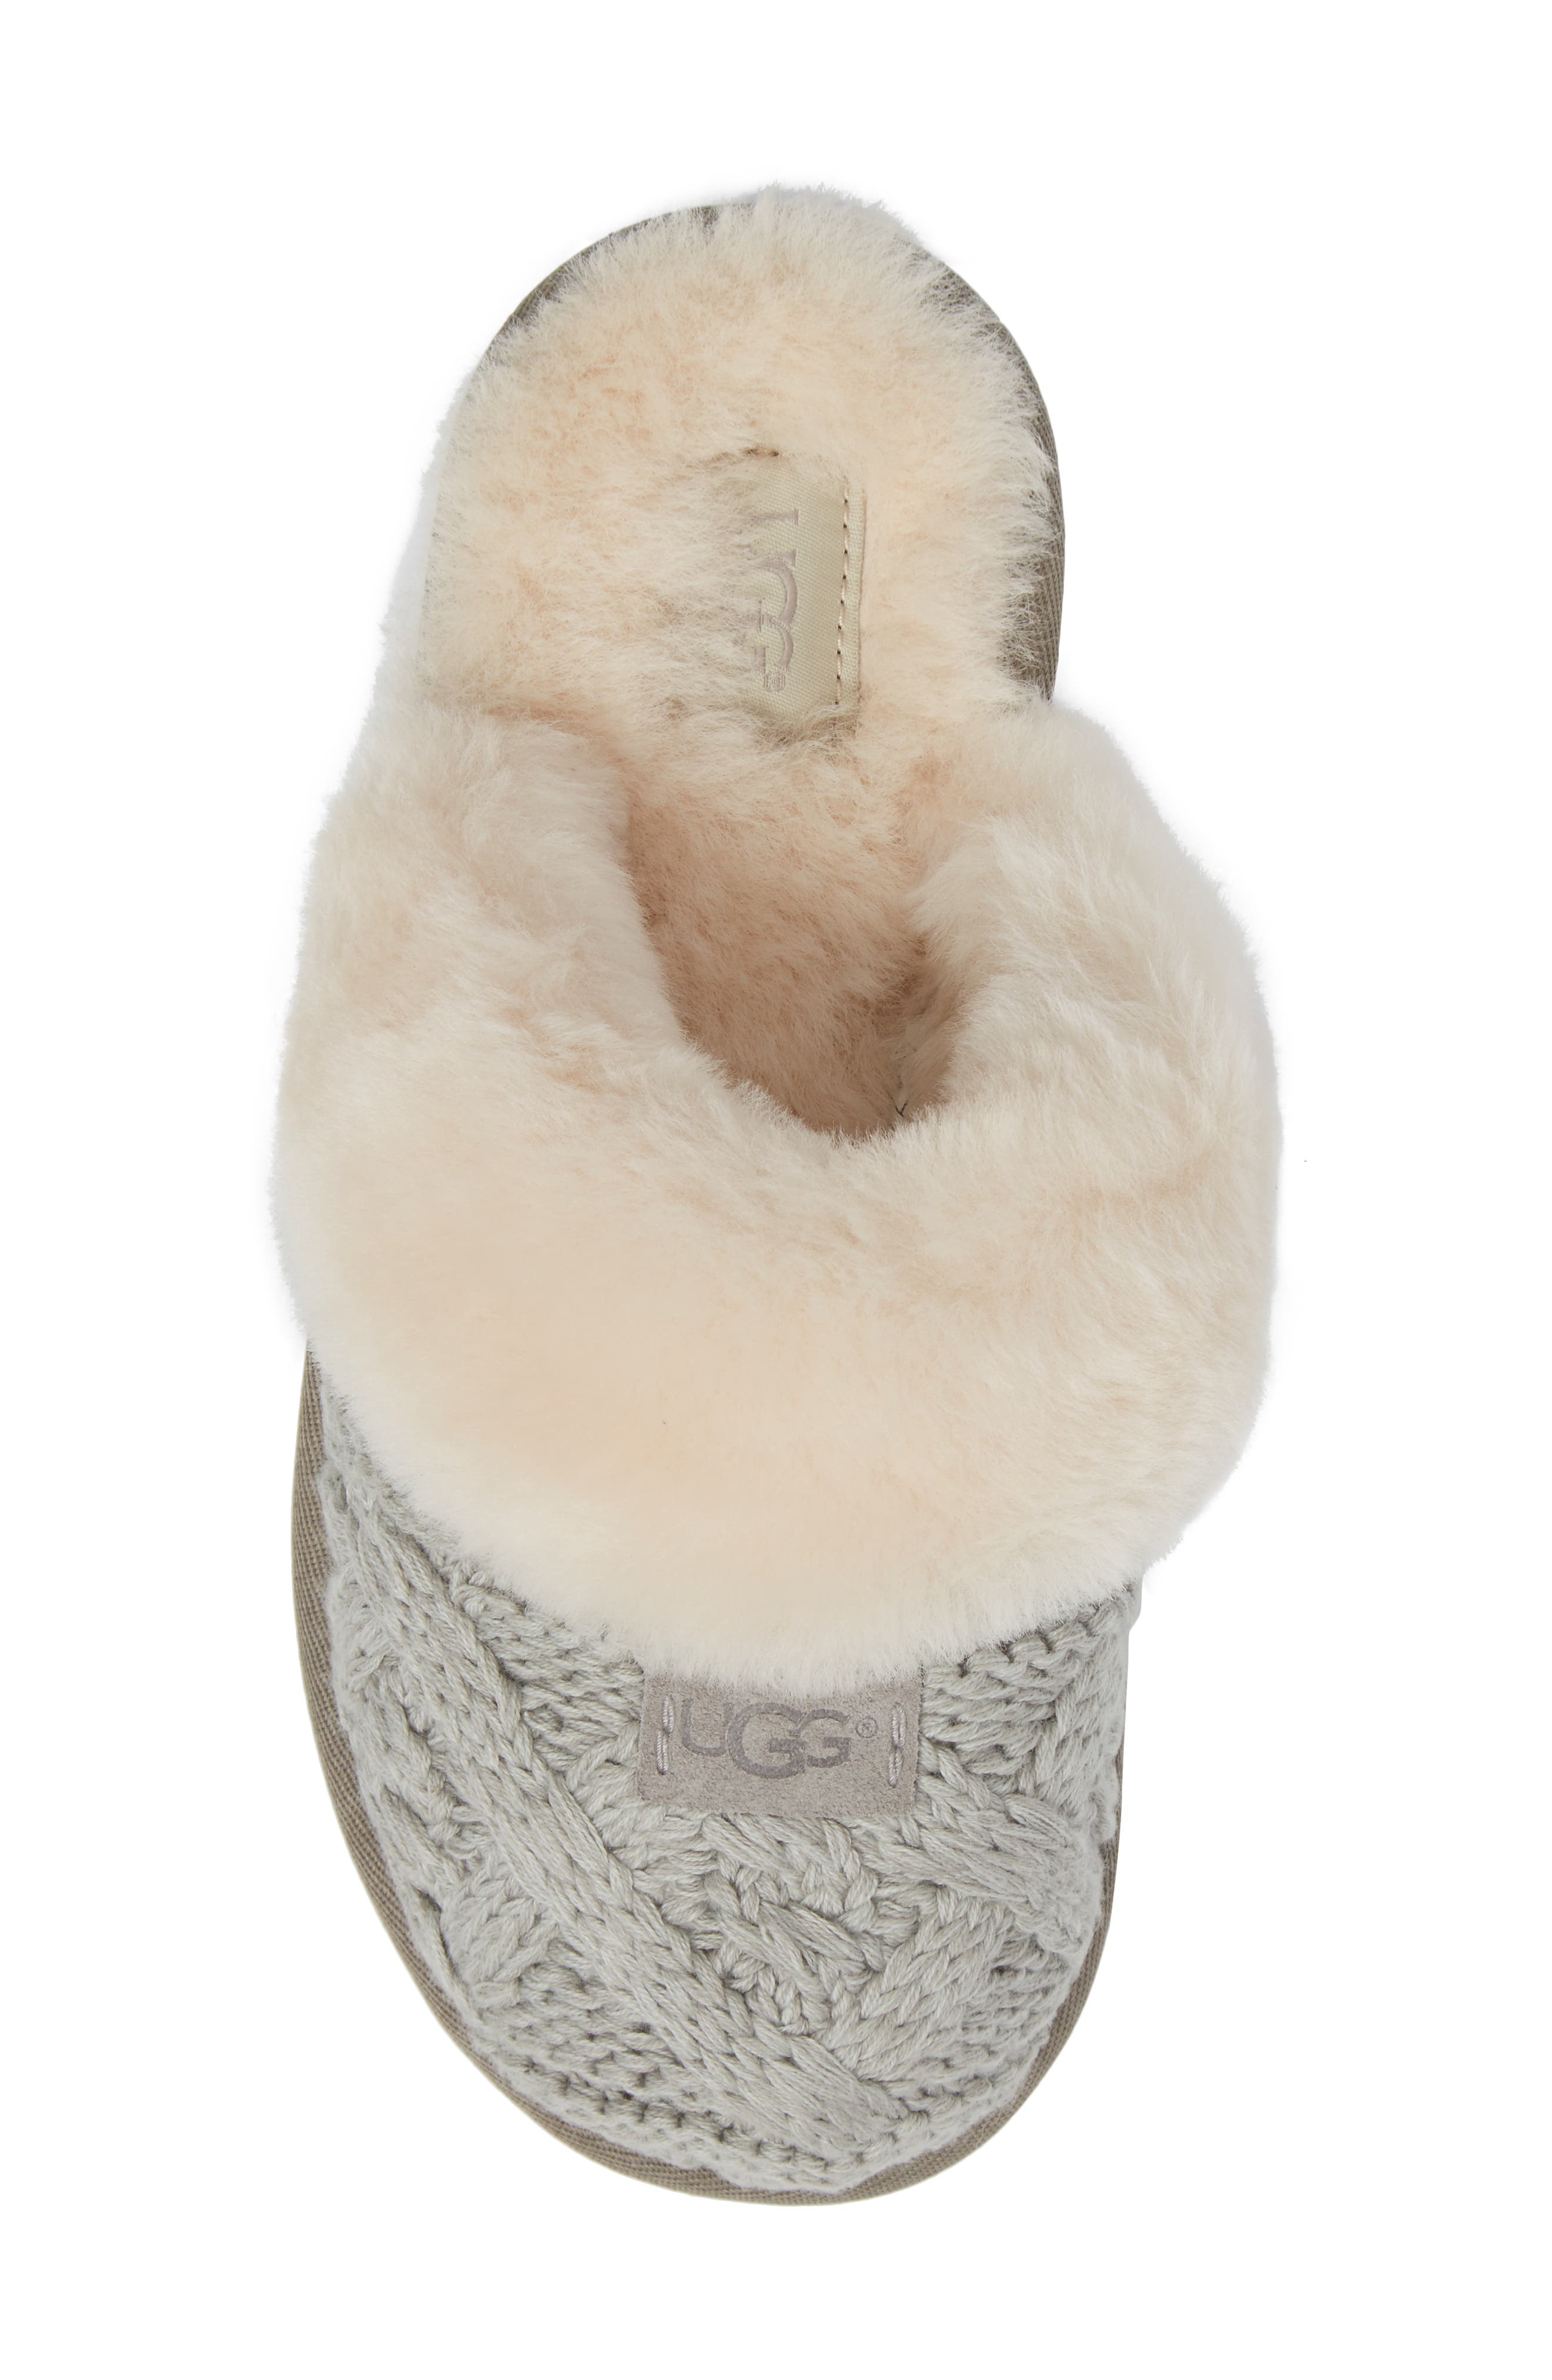 Cozy Cable Slipper,                             Alternate thumbnail 6, color,                             Seal Fabric